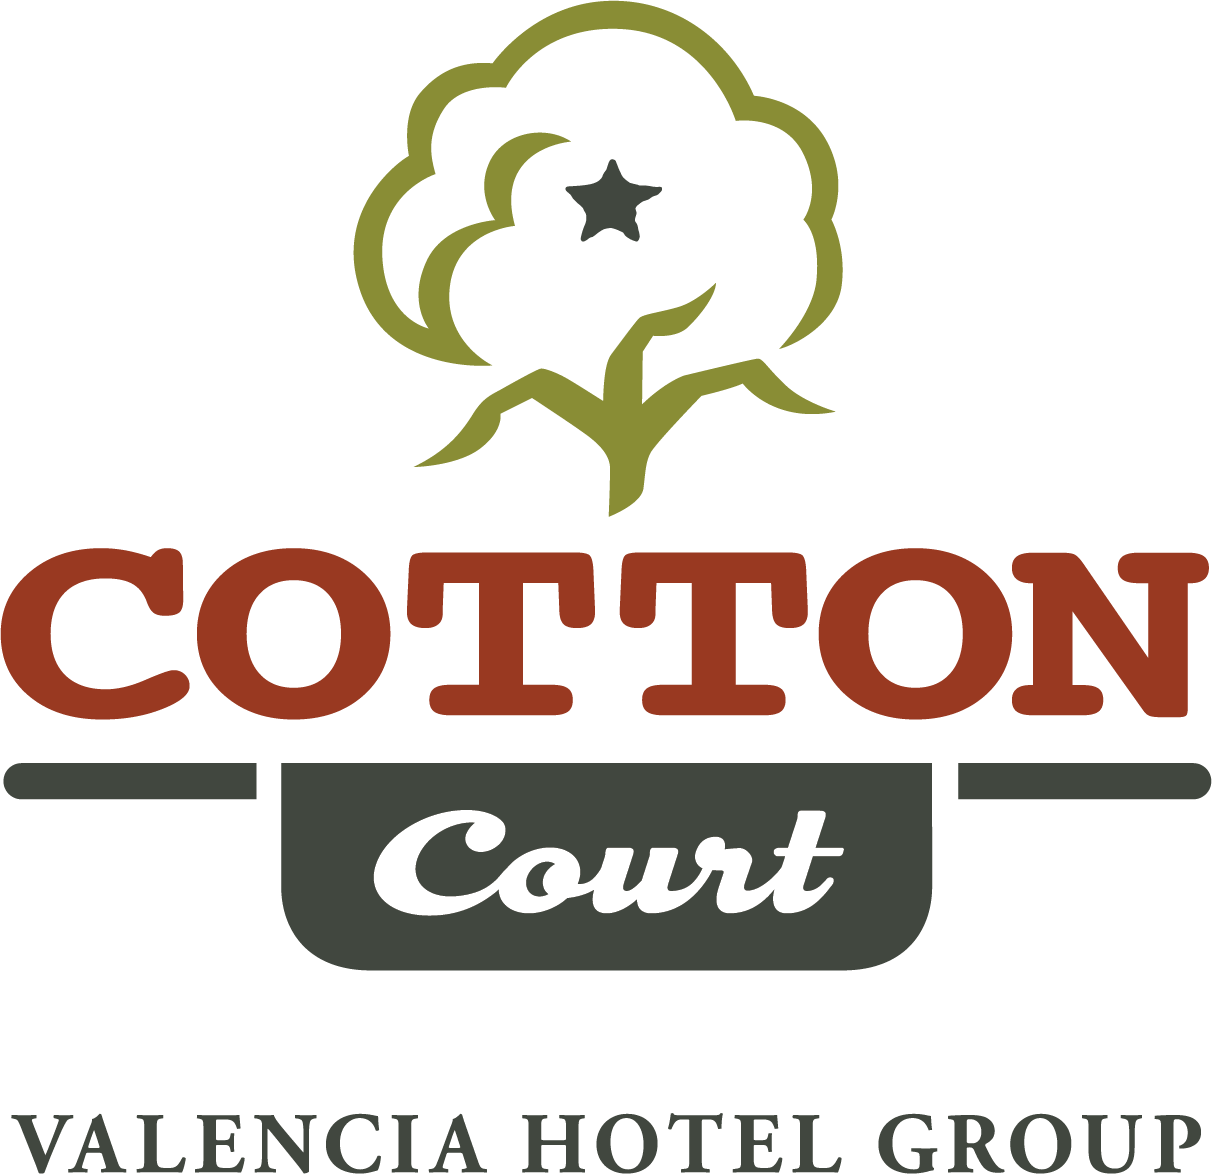 Cotton Court Hotel Logo